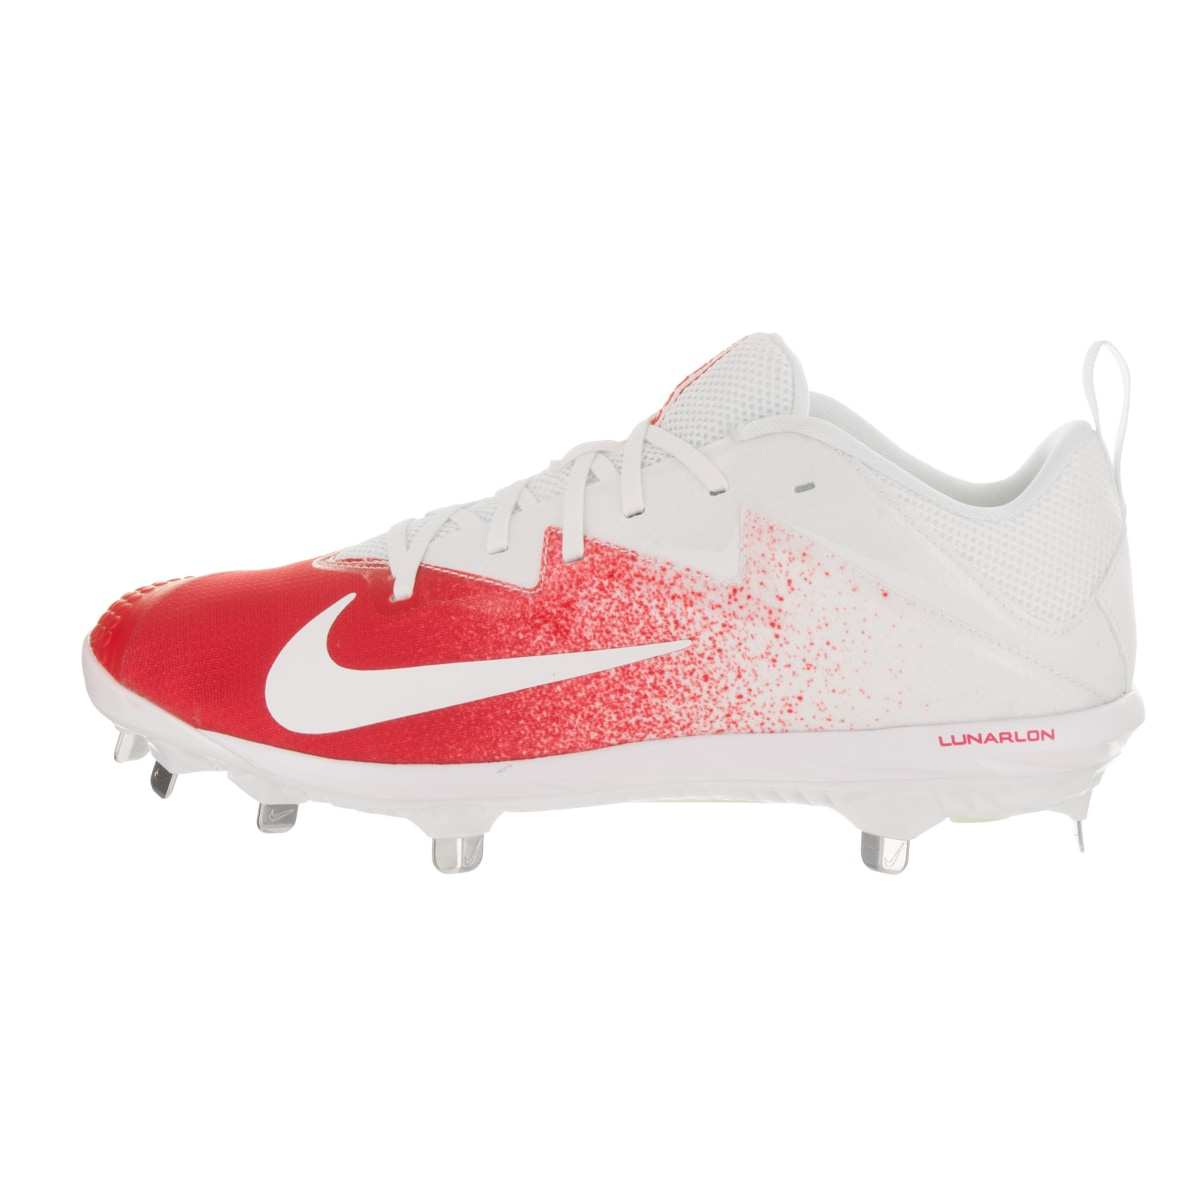 0c6a58ae9 Shop Nike Men s Lunar Vapor Ultrafly Pro Baseball Cleat - Free Shipping  Today - Overstock - 15269268